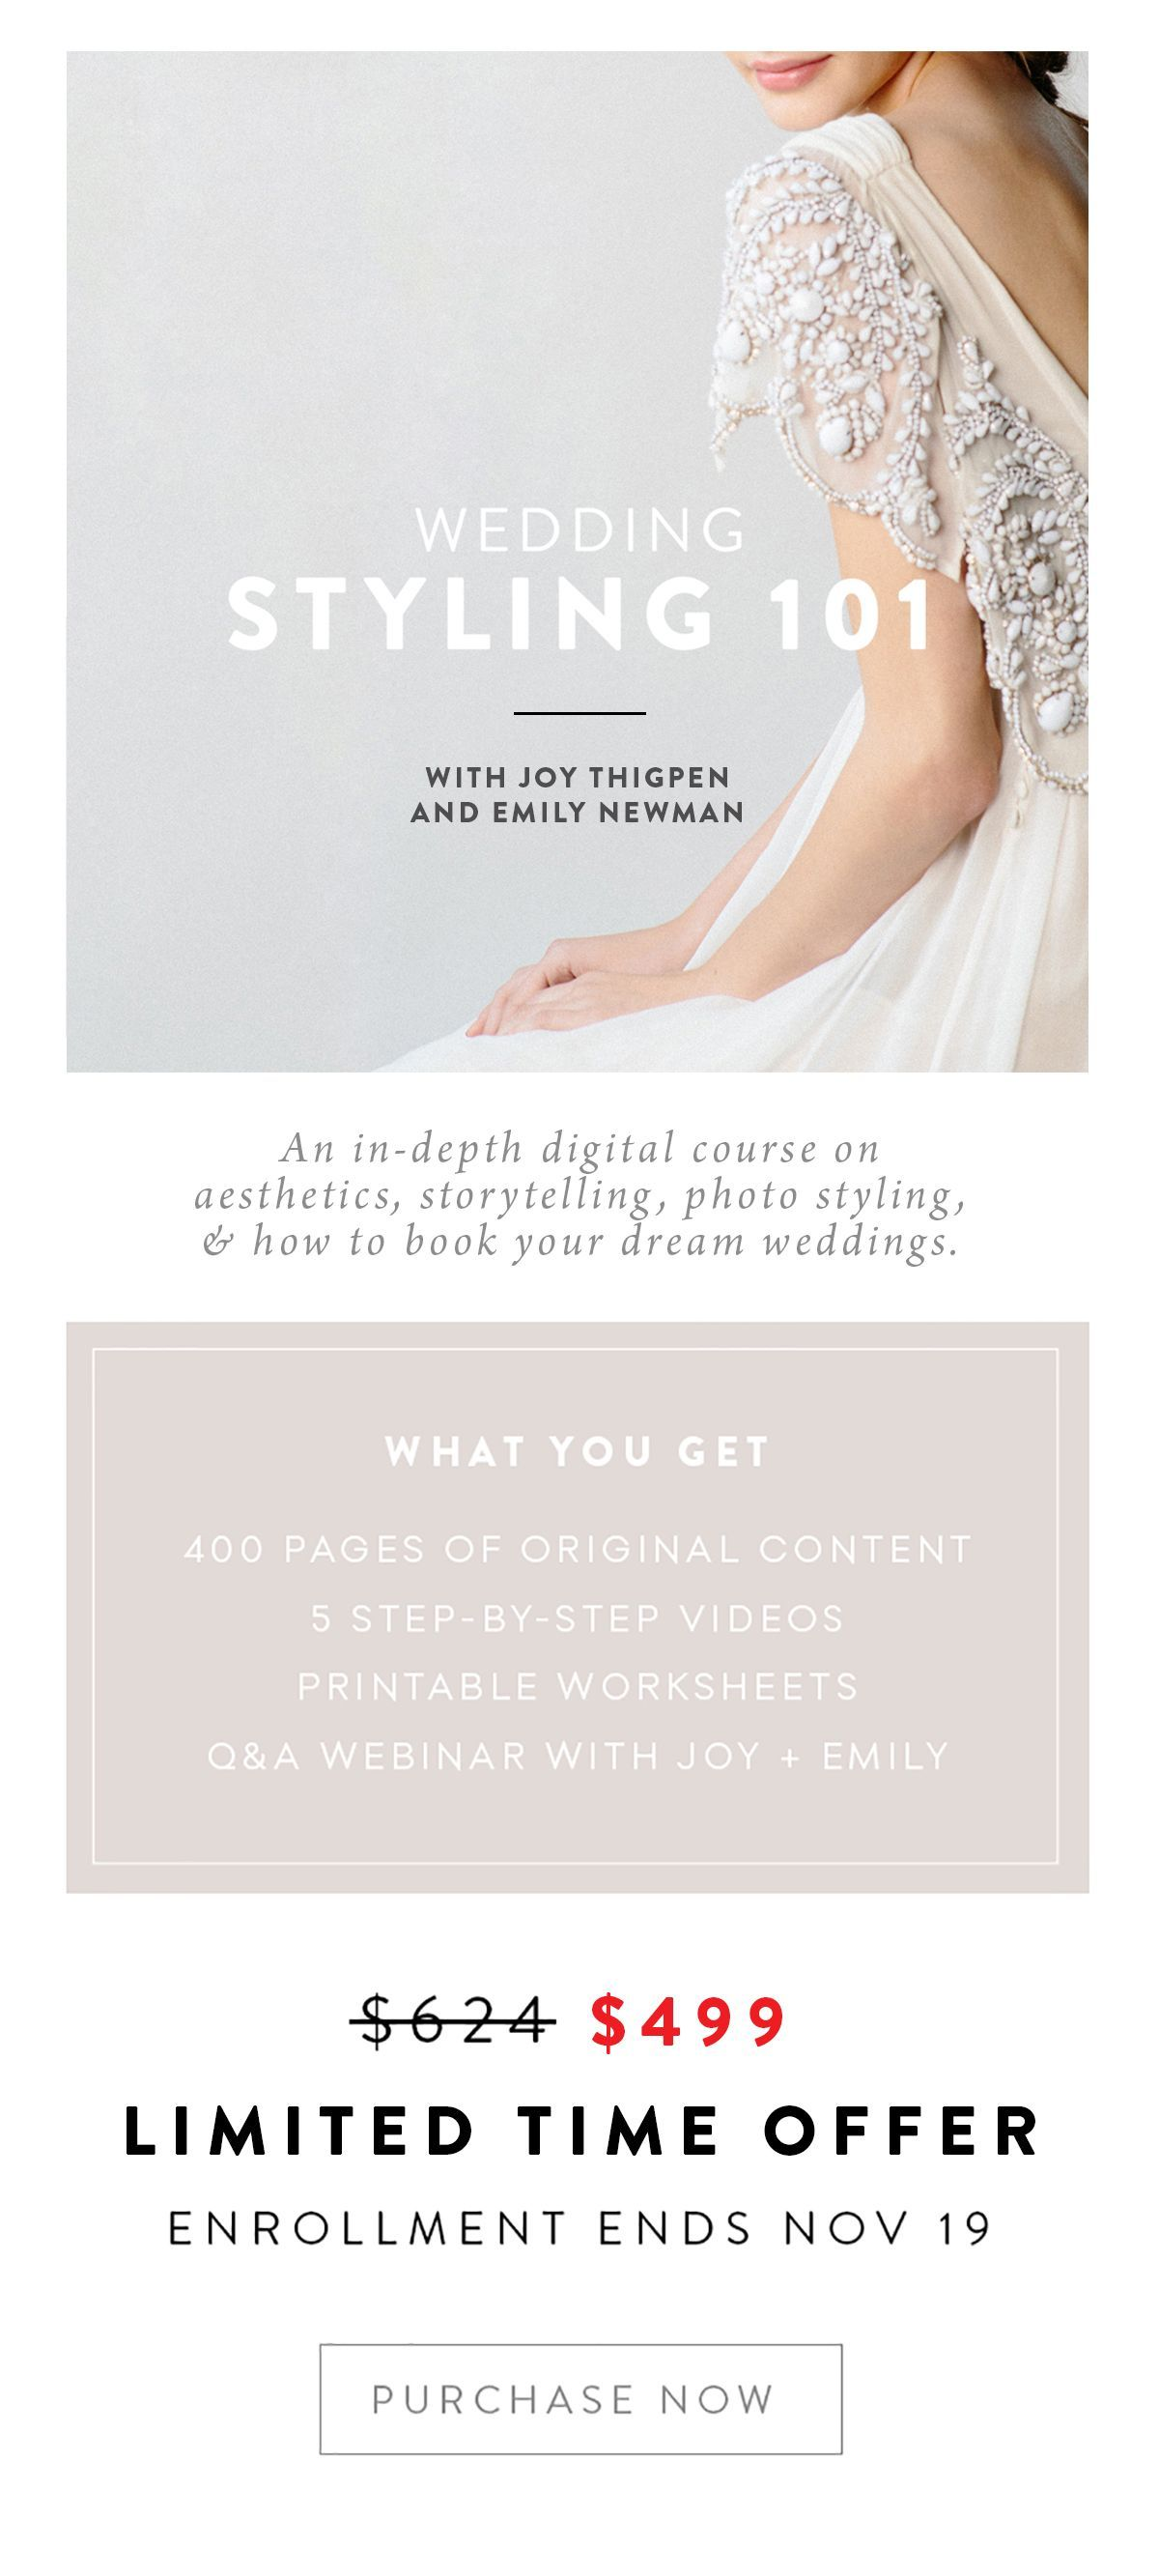 In-depth styling training is here: Wedding Styling 101